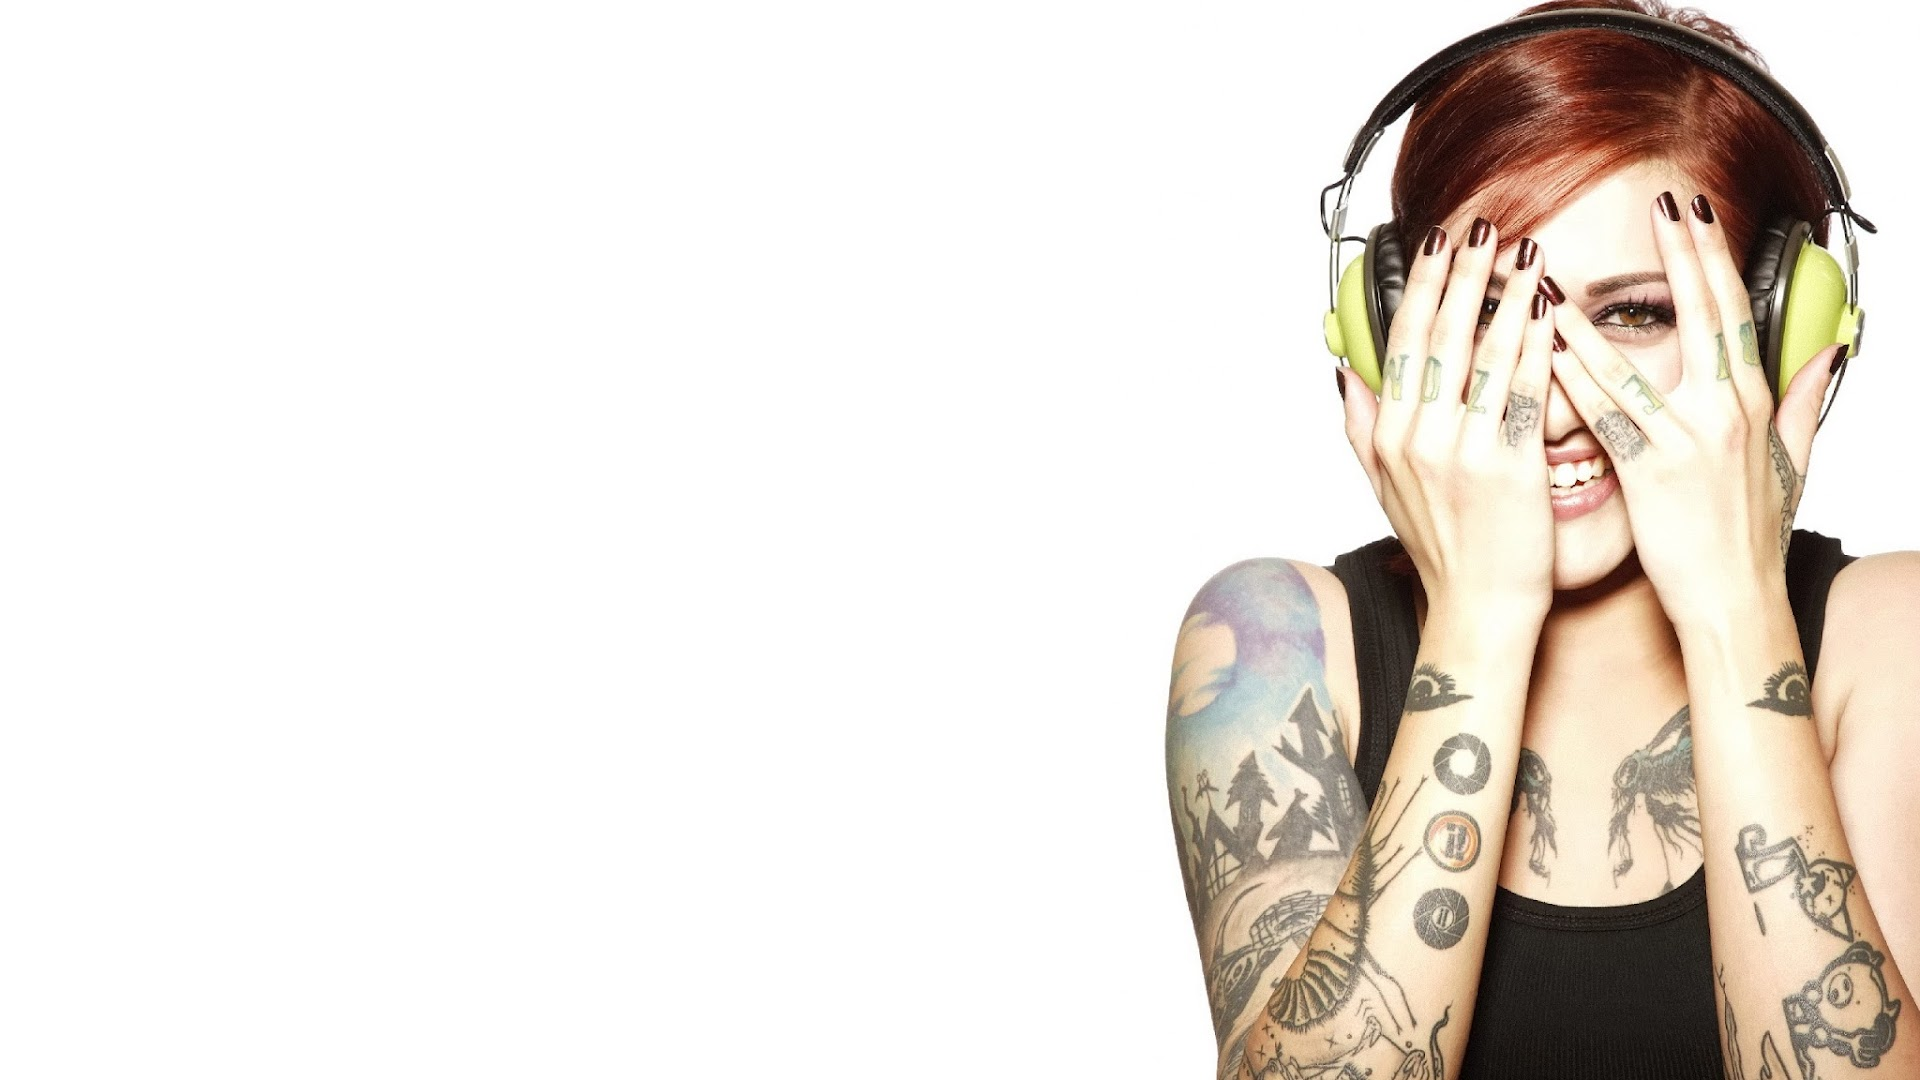 tattoo girl hd wallpaper - photo #3